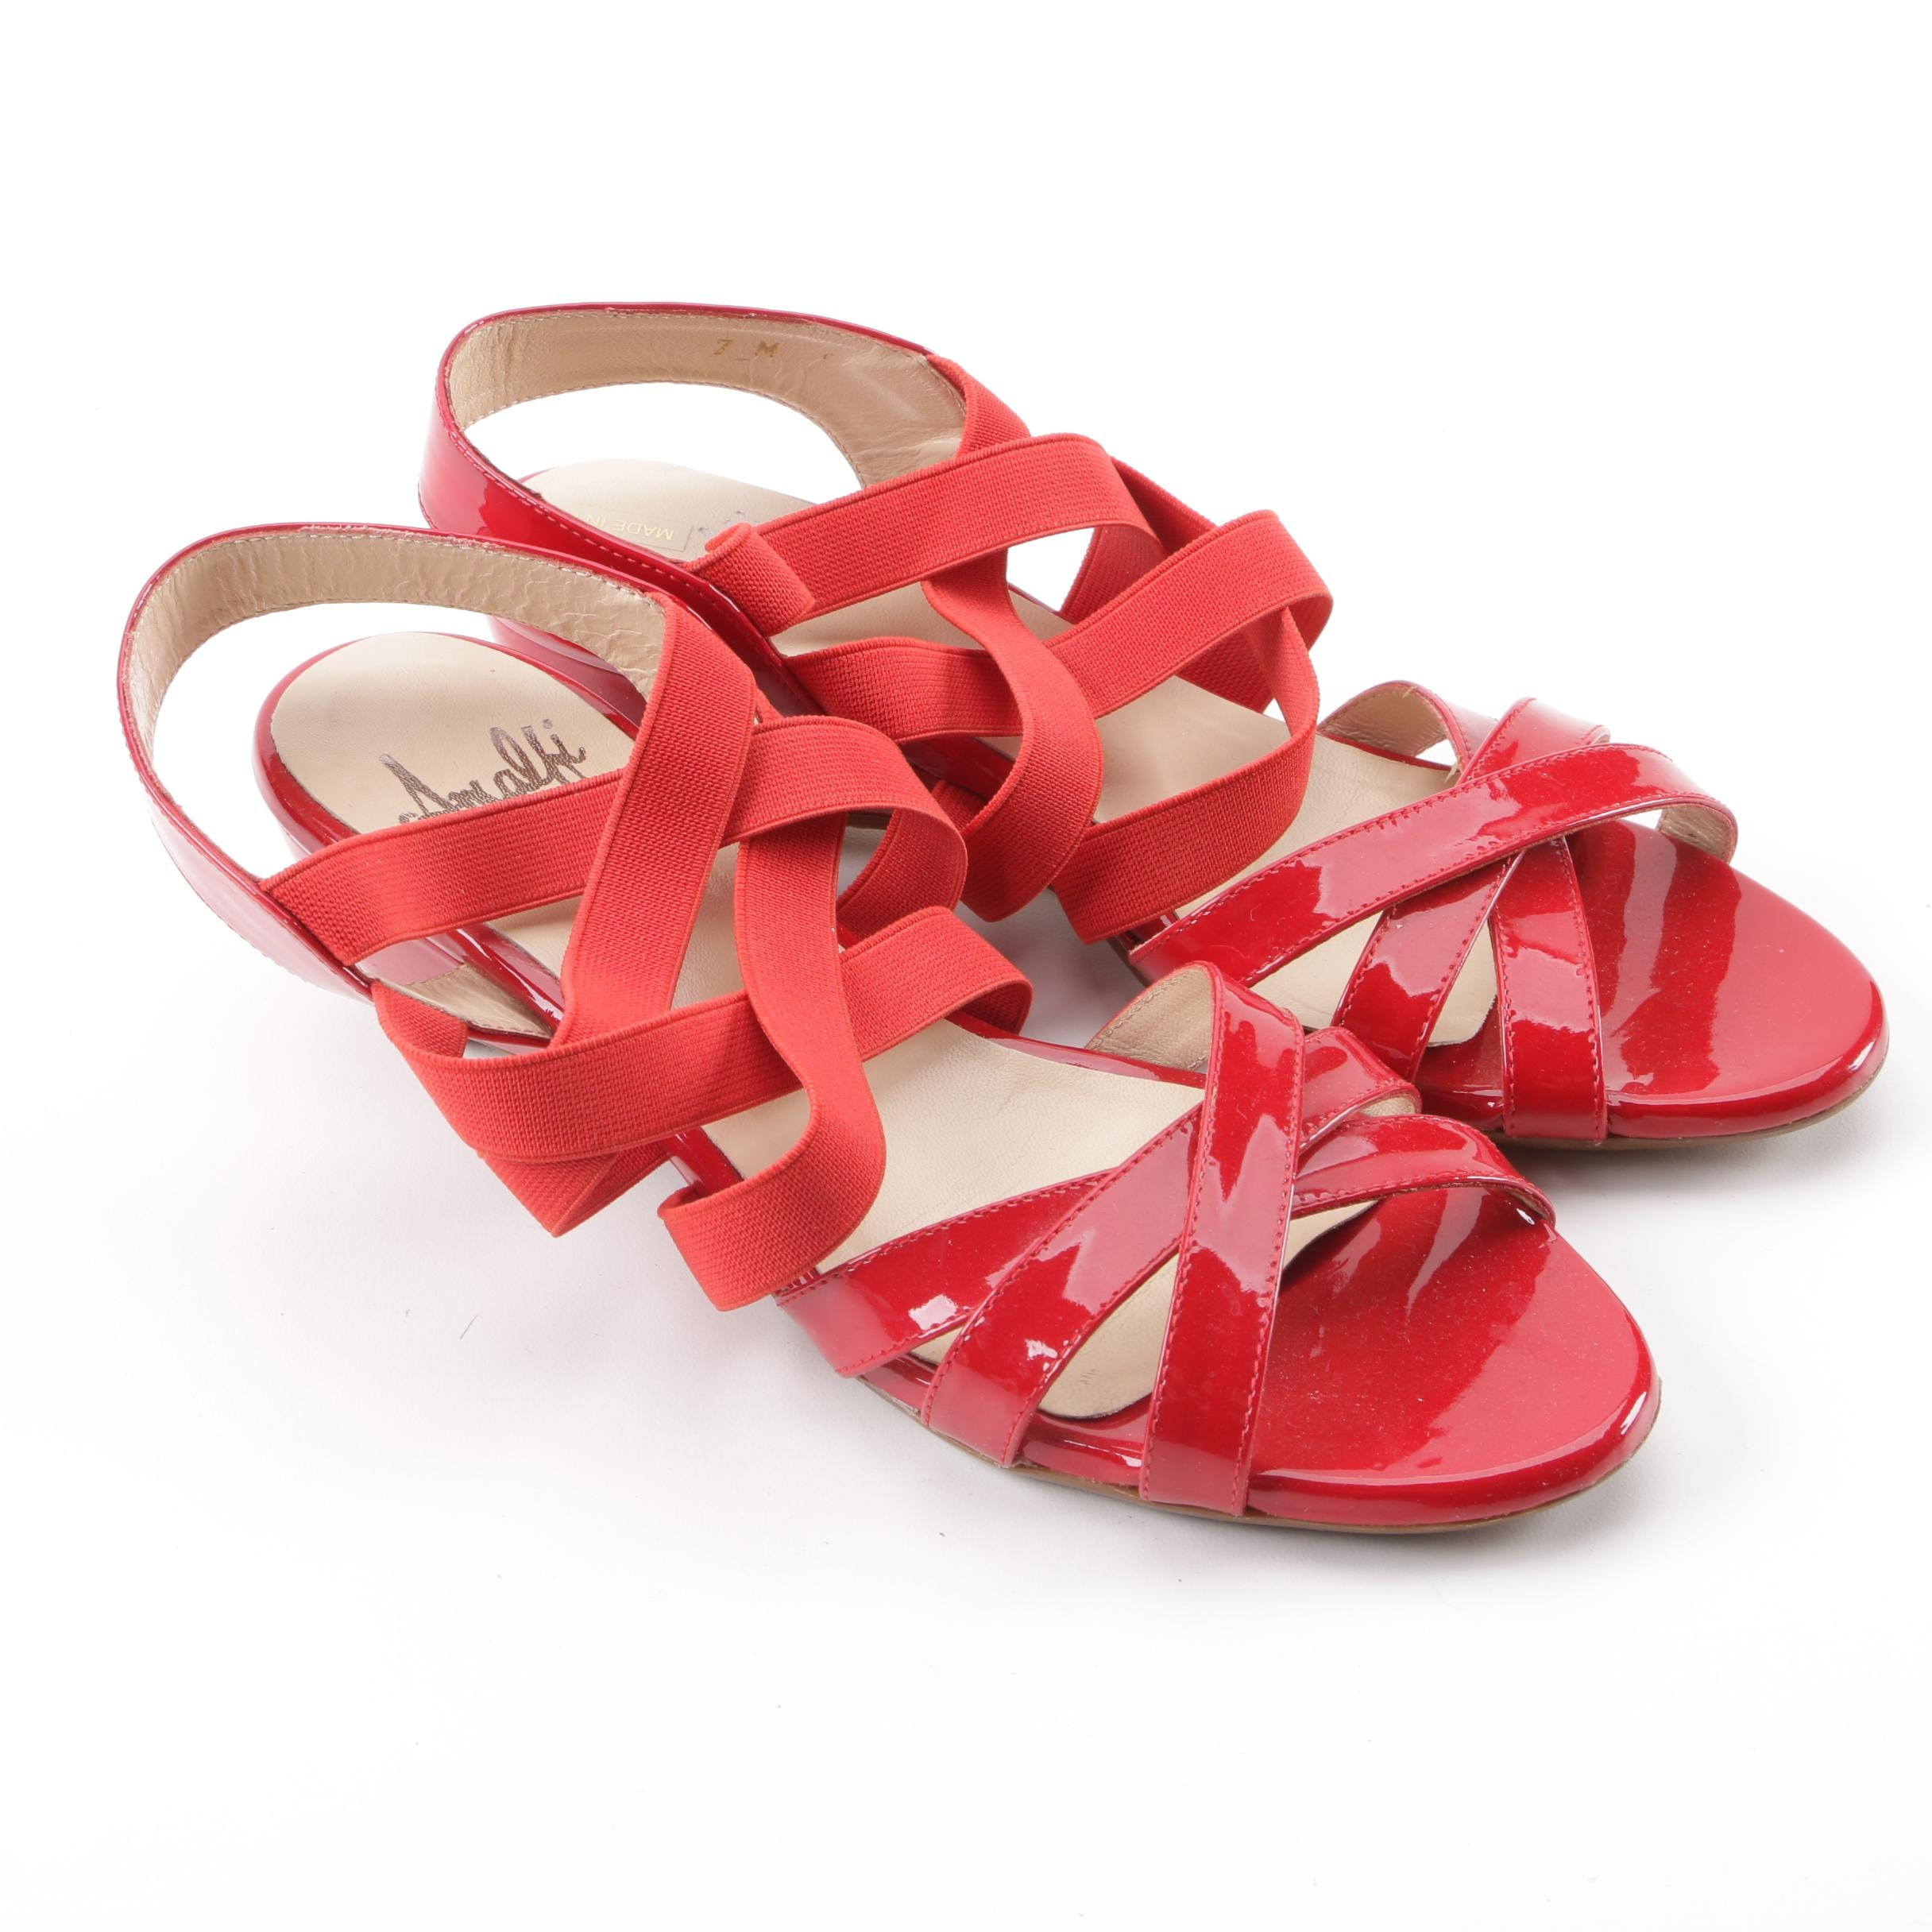 Vintage Amalfi by Rangoni Red Patent Leather Strappy Wedge Sandals